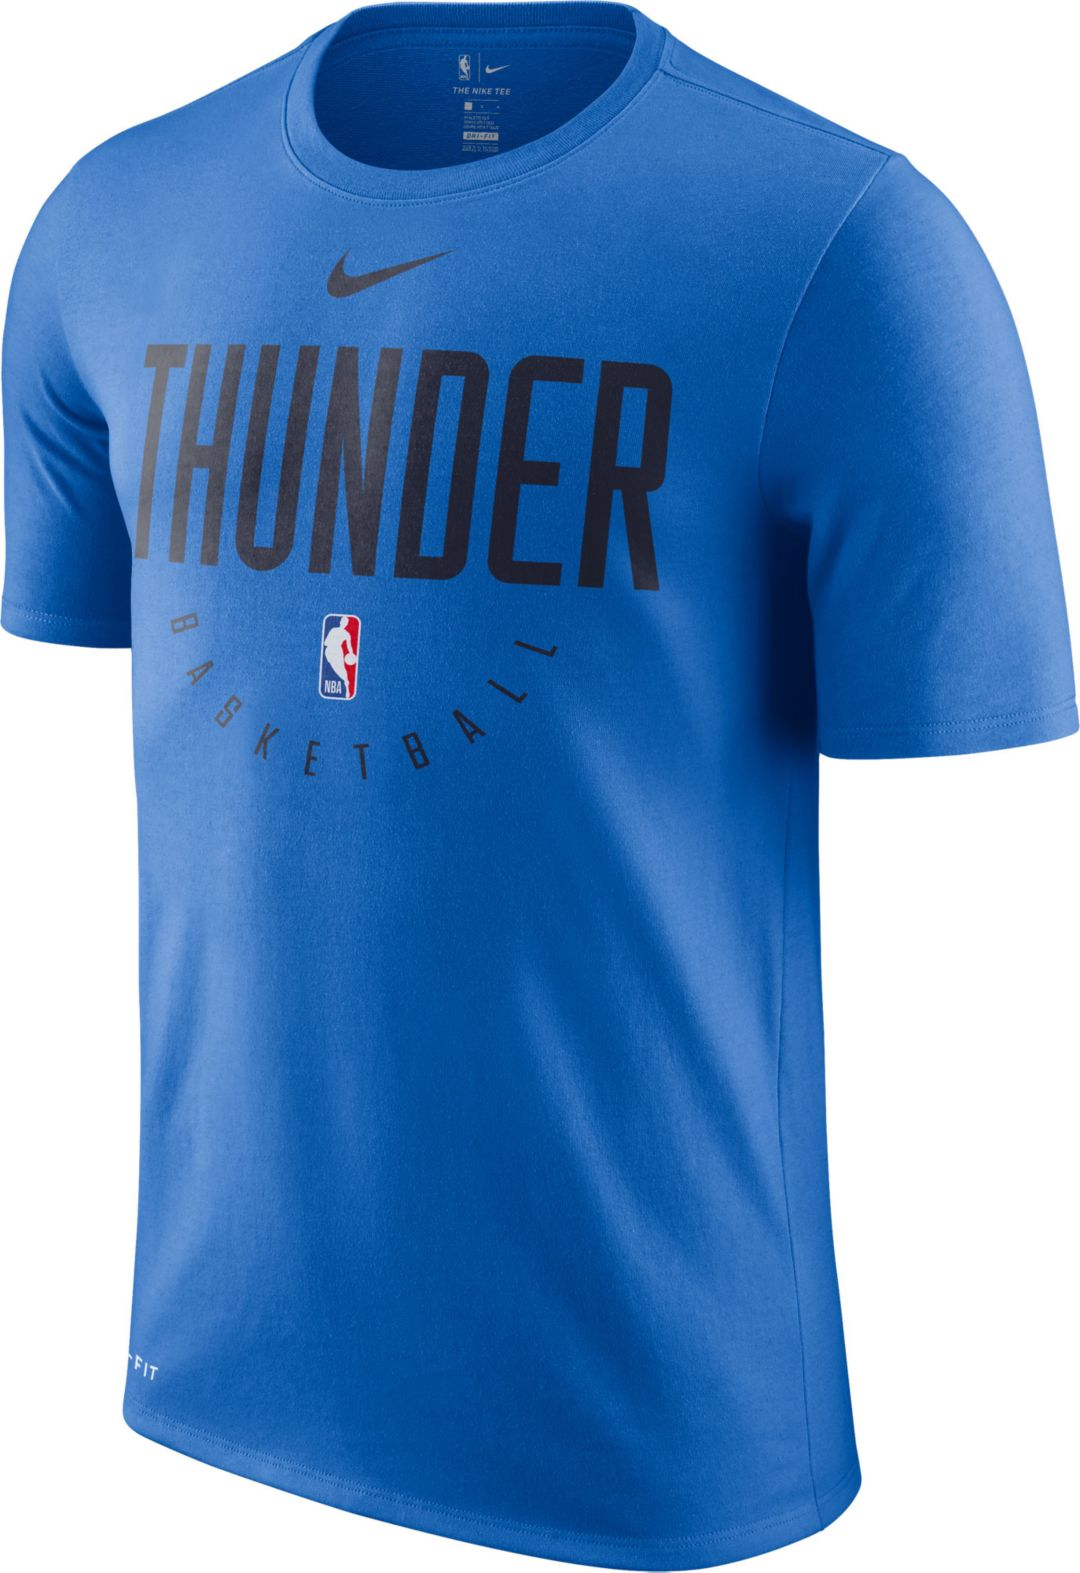 62bc8916 Nike Men's Oklahoma City Thunder Dri-FIT Practice T-Shirt | DICK'S ...